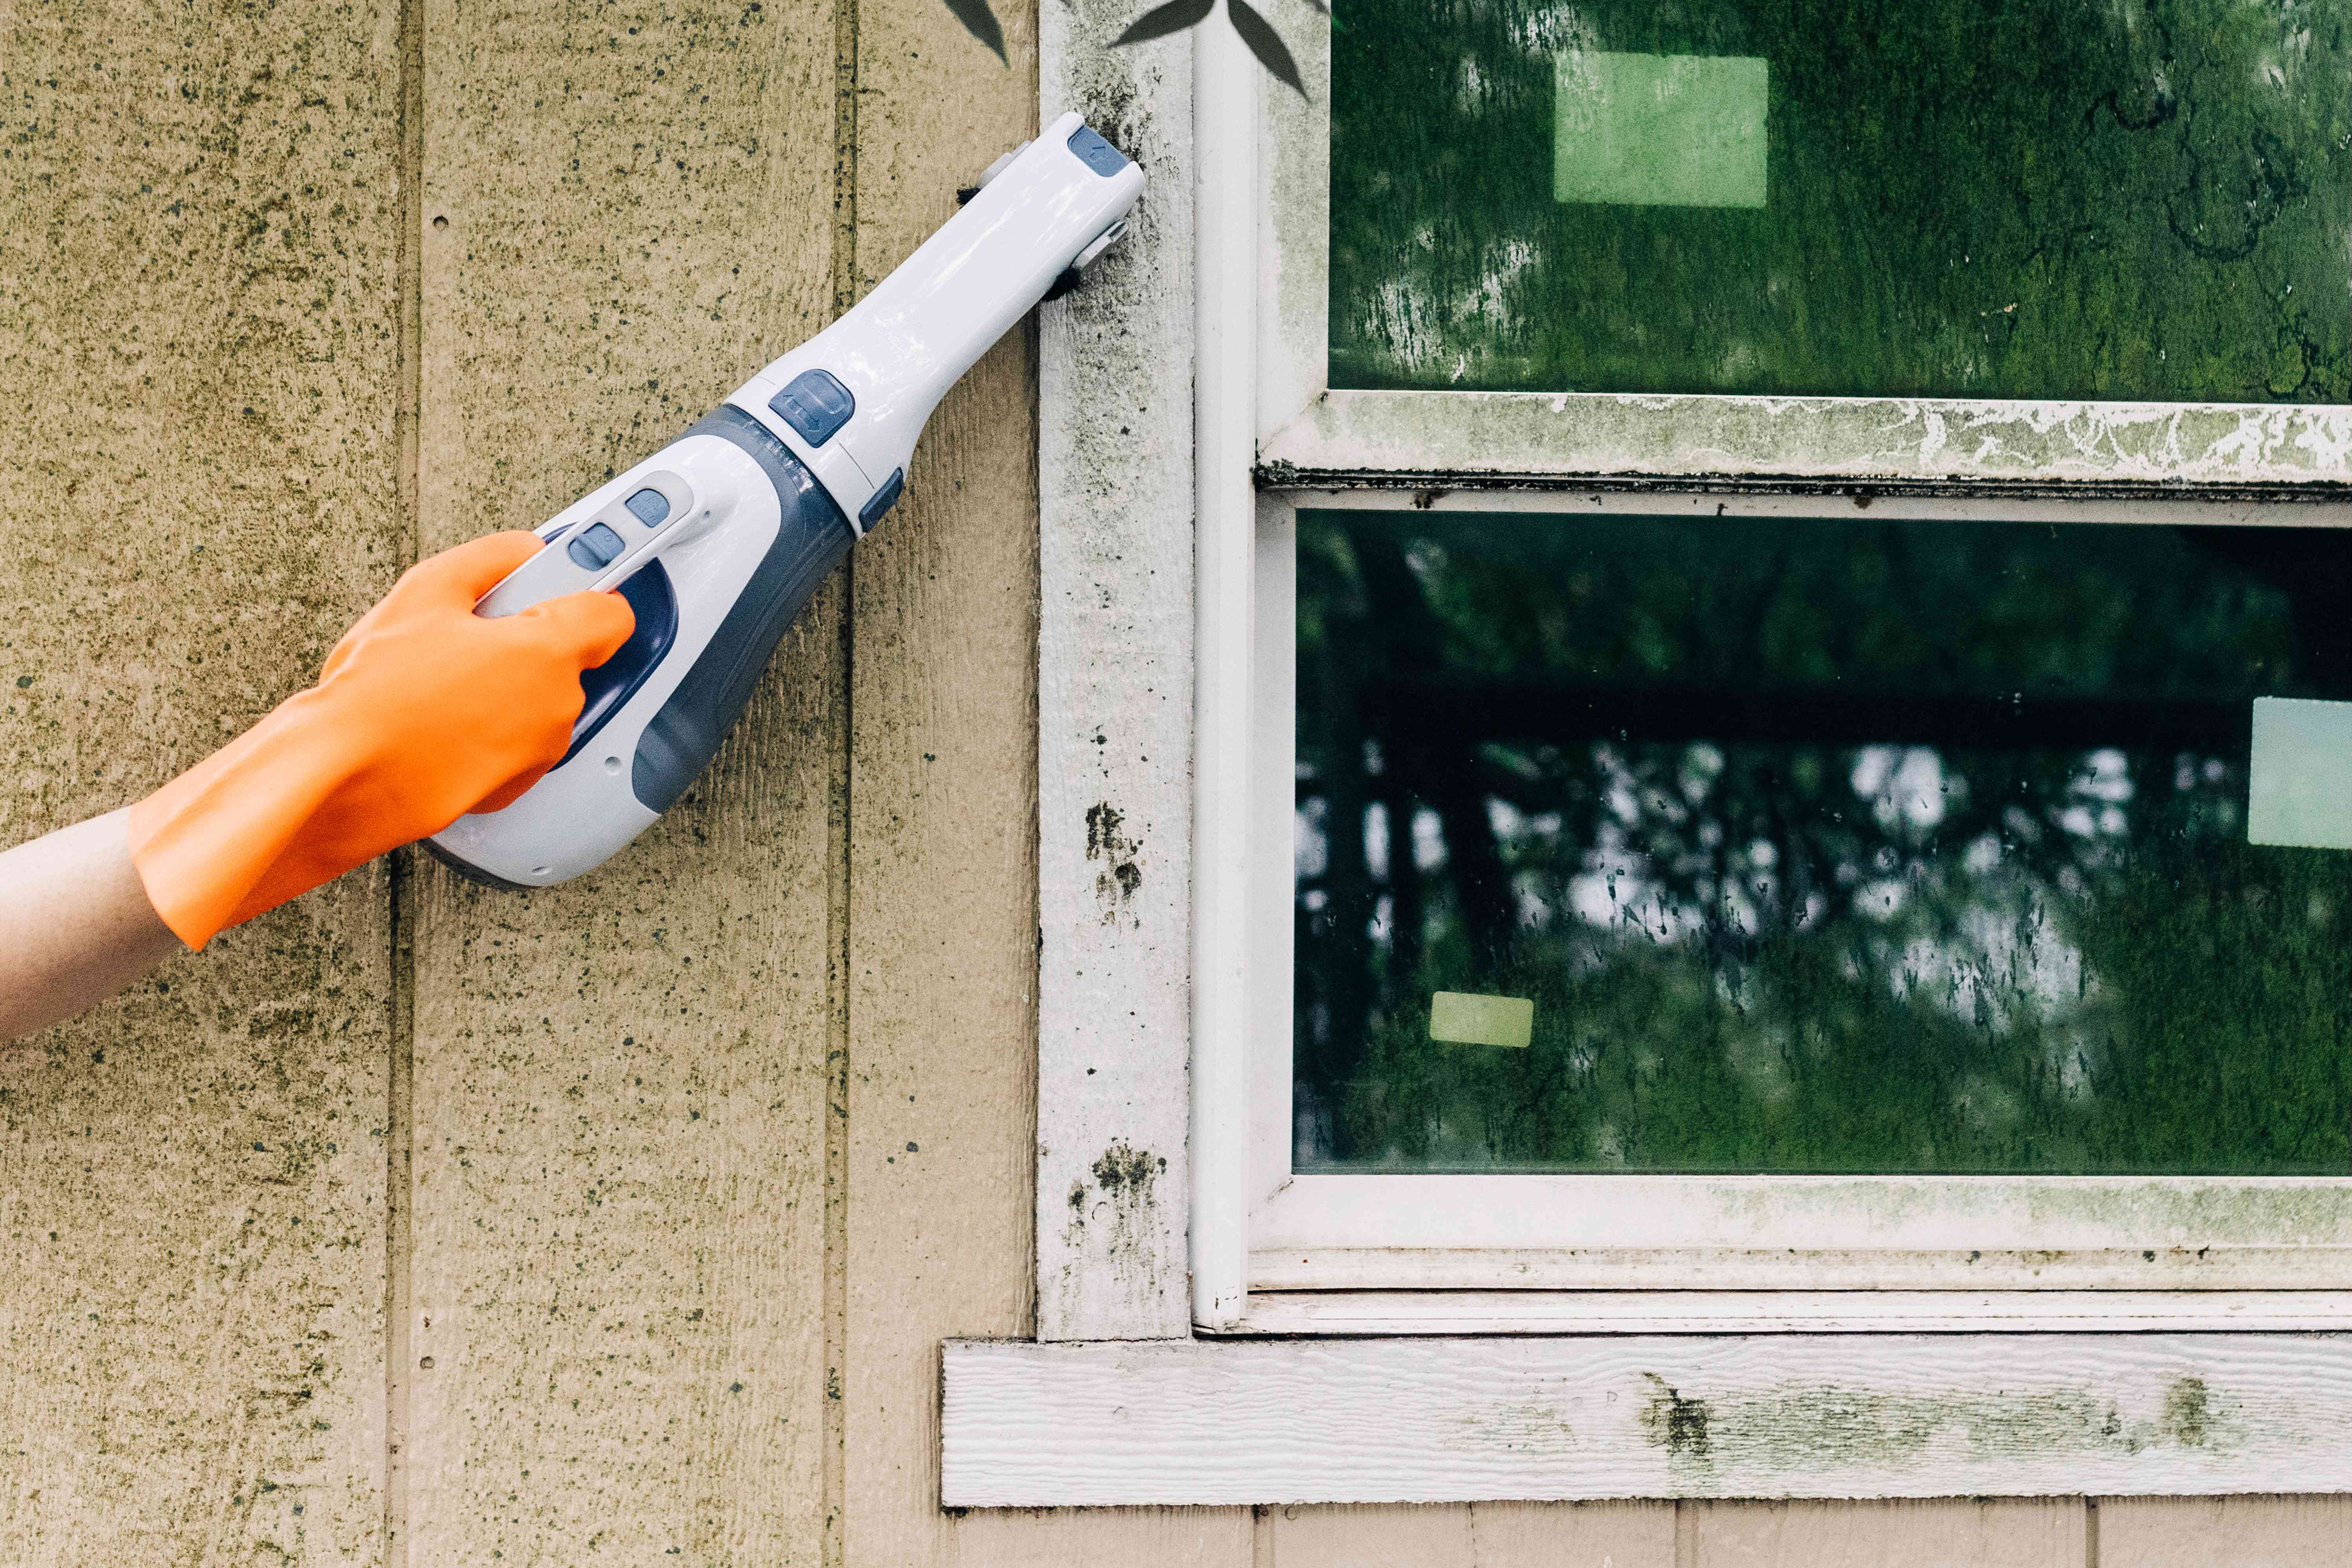 Outdoor mold vacuumed by handheld HEPA filter vacuum and held with orange gloves